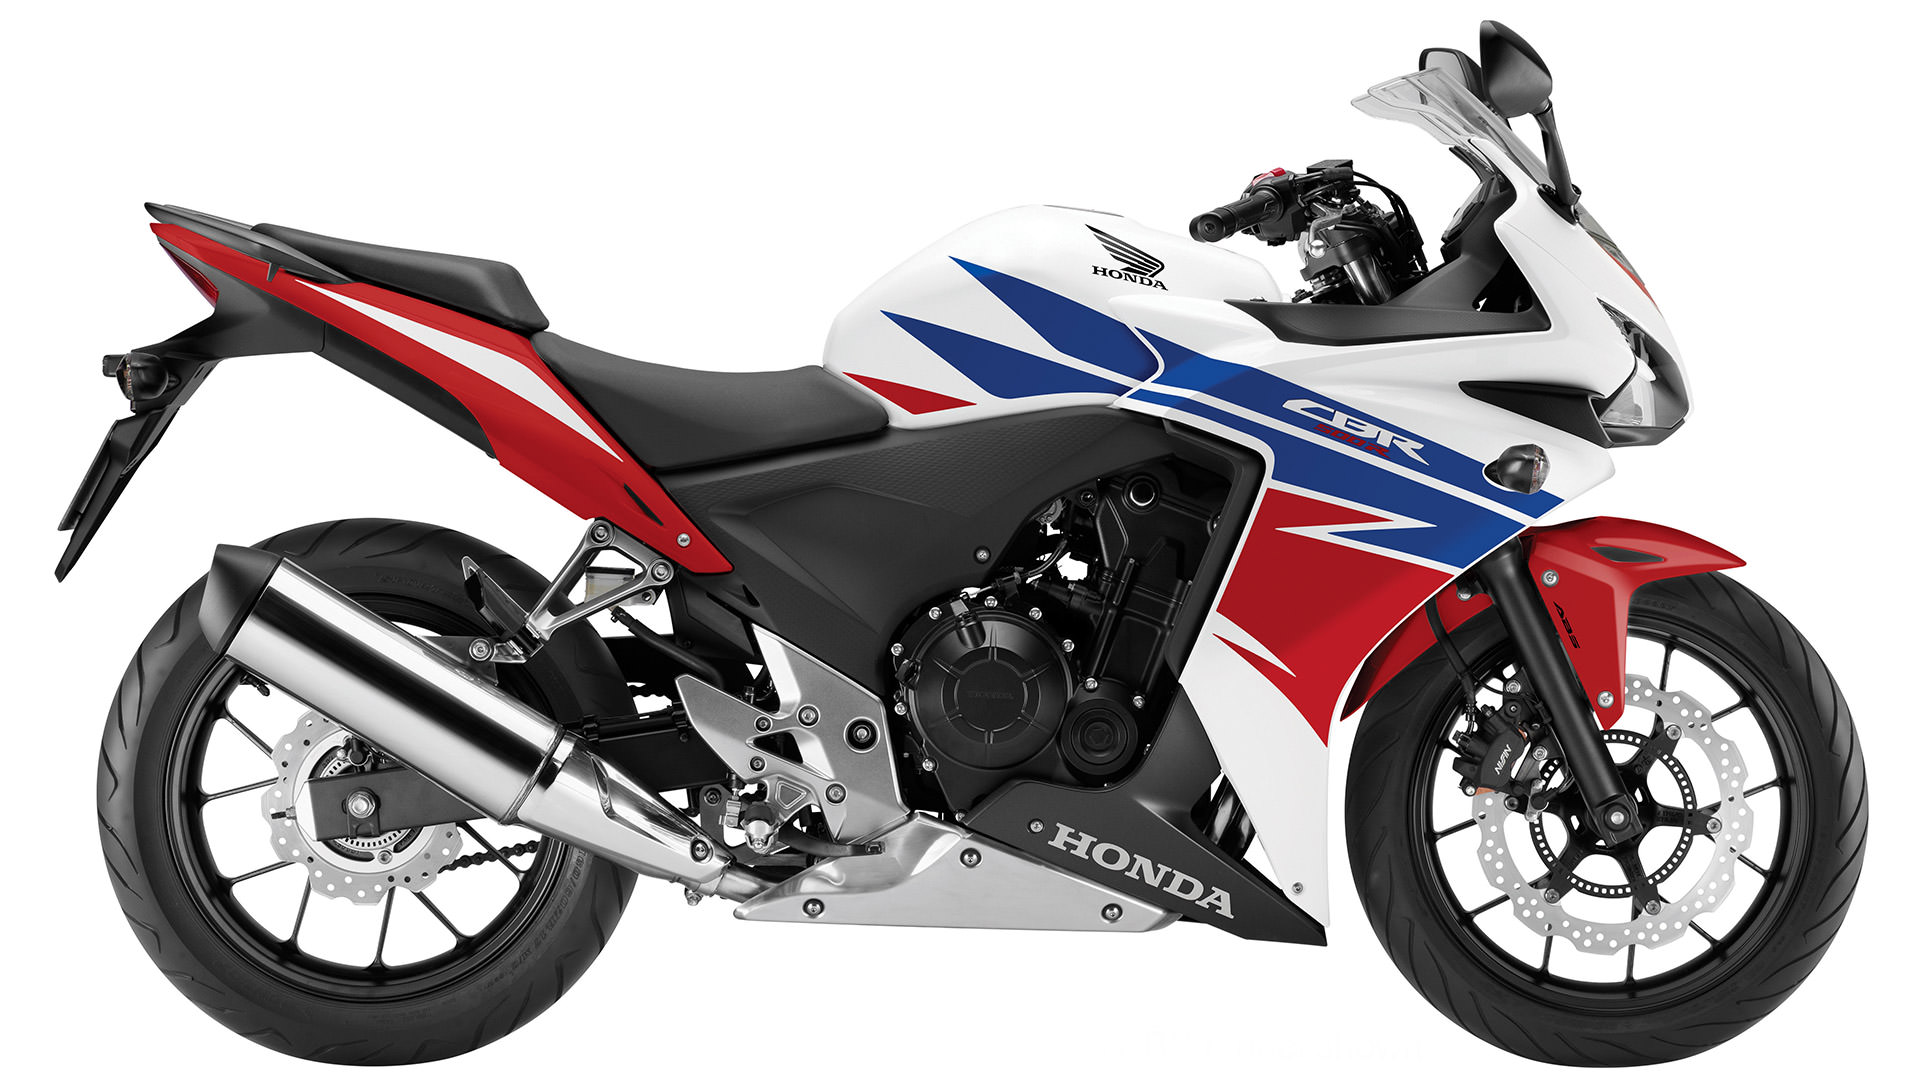 hight resolution of while the cbr500r cb500f and cb500xare focused in different directions they areall physically easy to manage and deliver all round practicality matched to